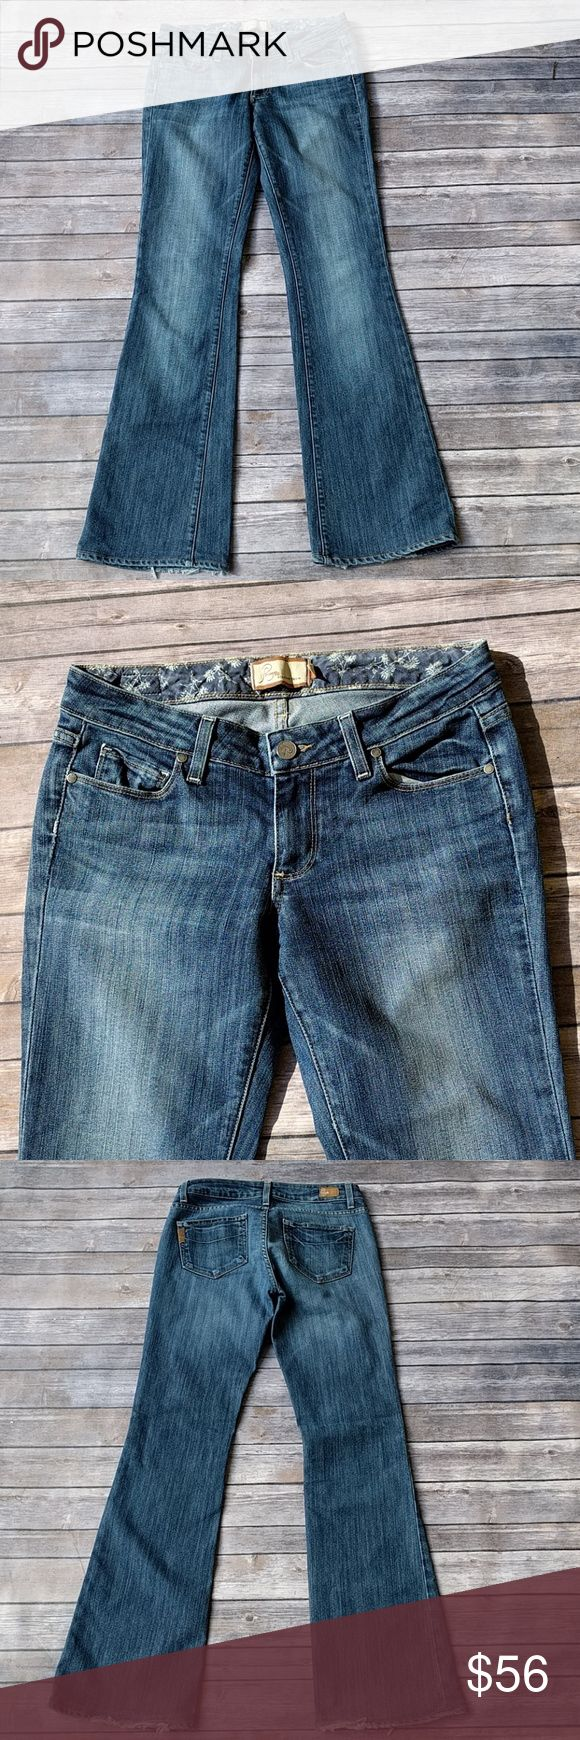 Paige premium denim jeans Beautiful medium wash Paige premium denim super flattering color. Great condition but there is some fraying on the back at the very bottom Inseam 31 Outseam 39.5 Rise 7.5 Paige Jeans Jeans